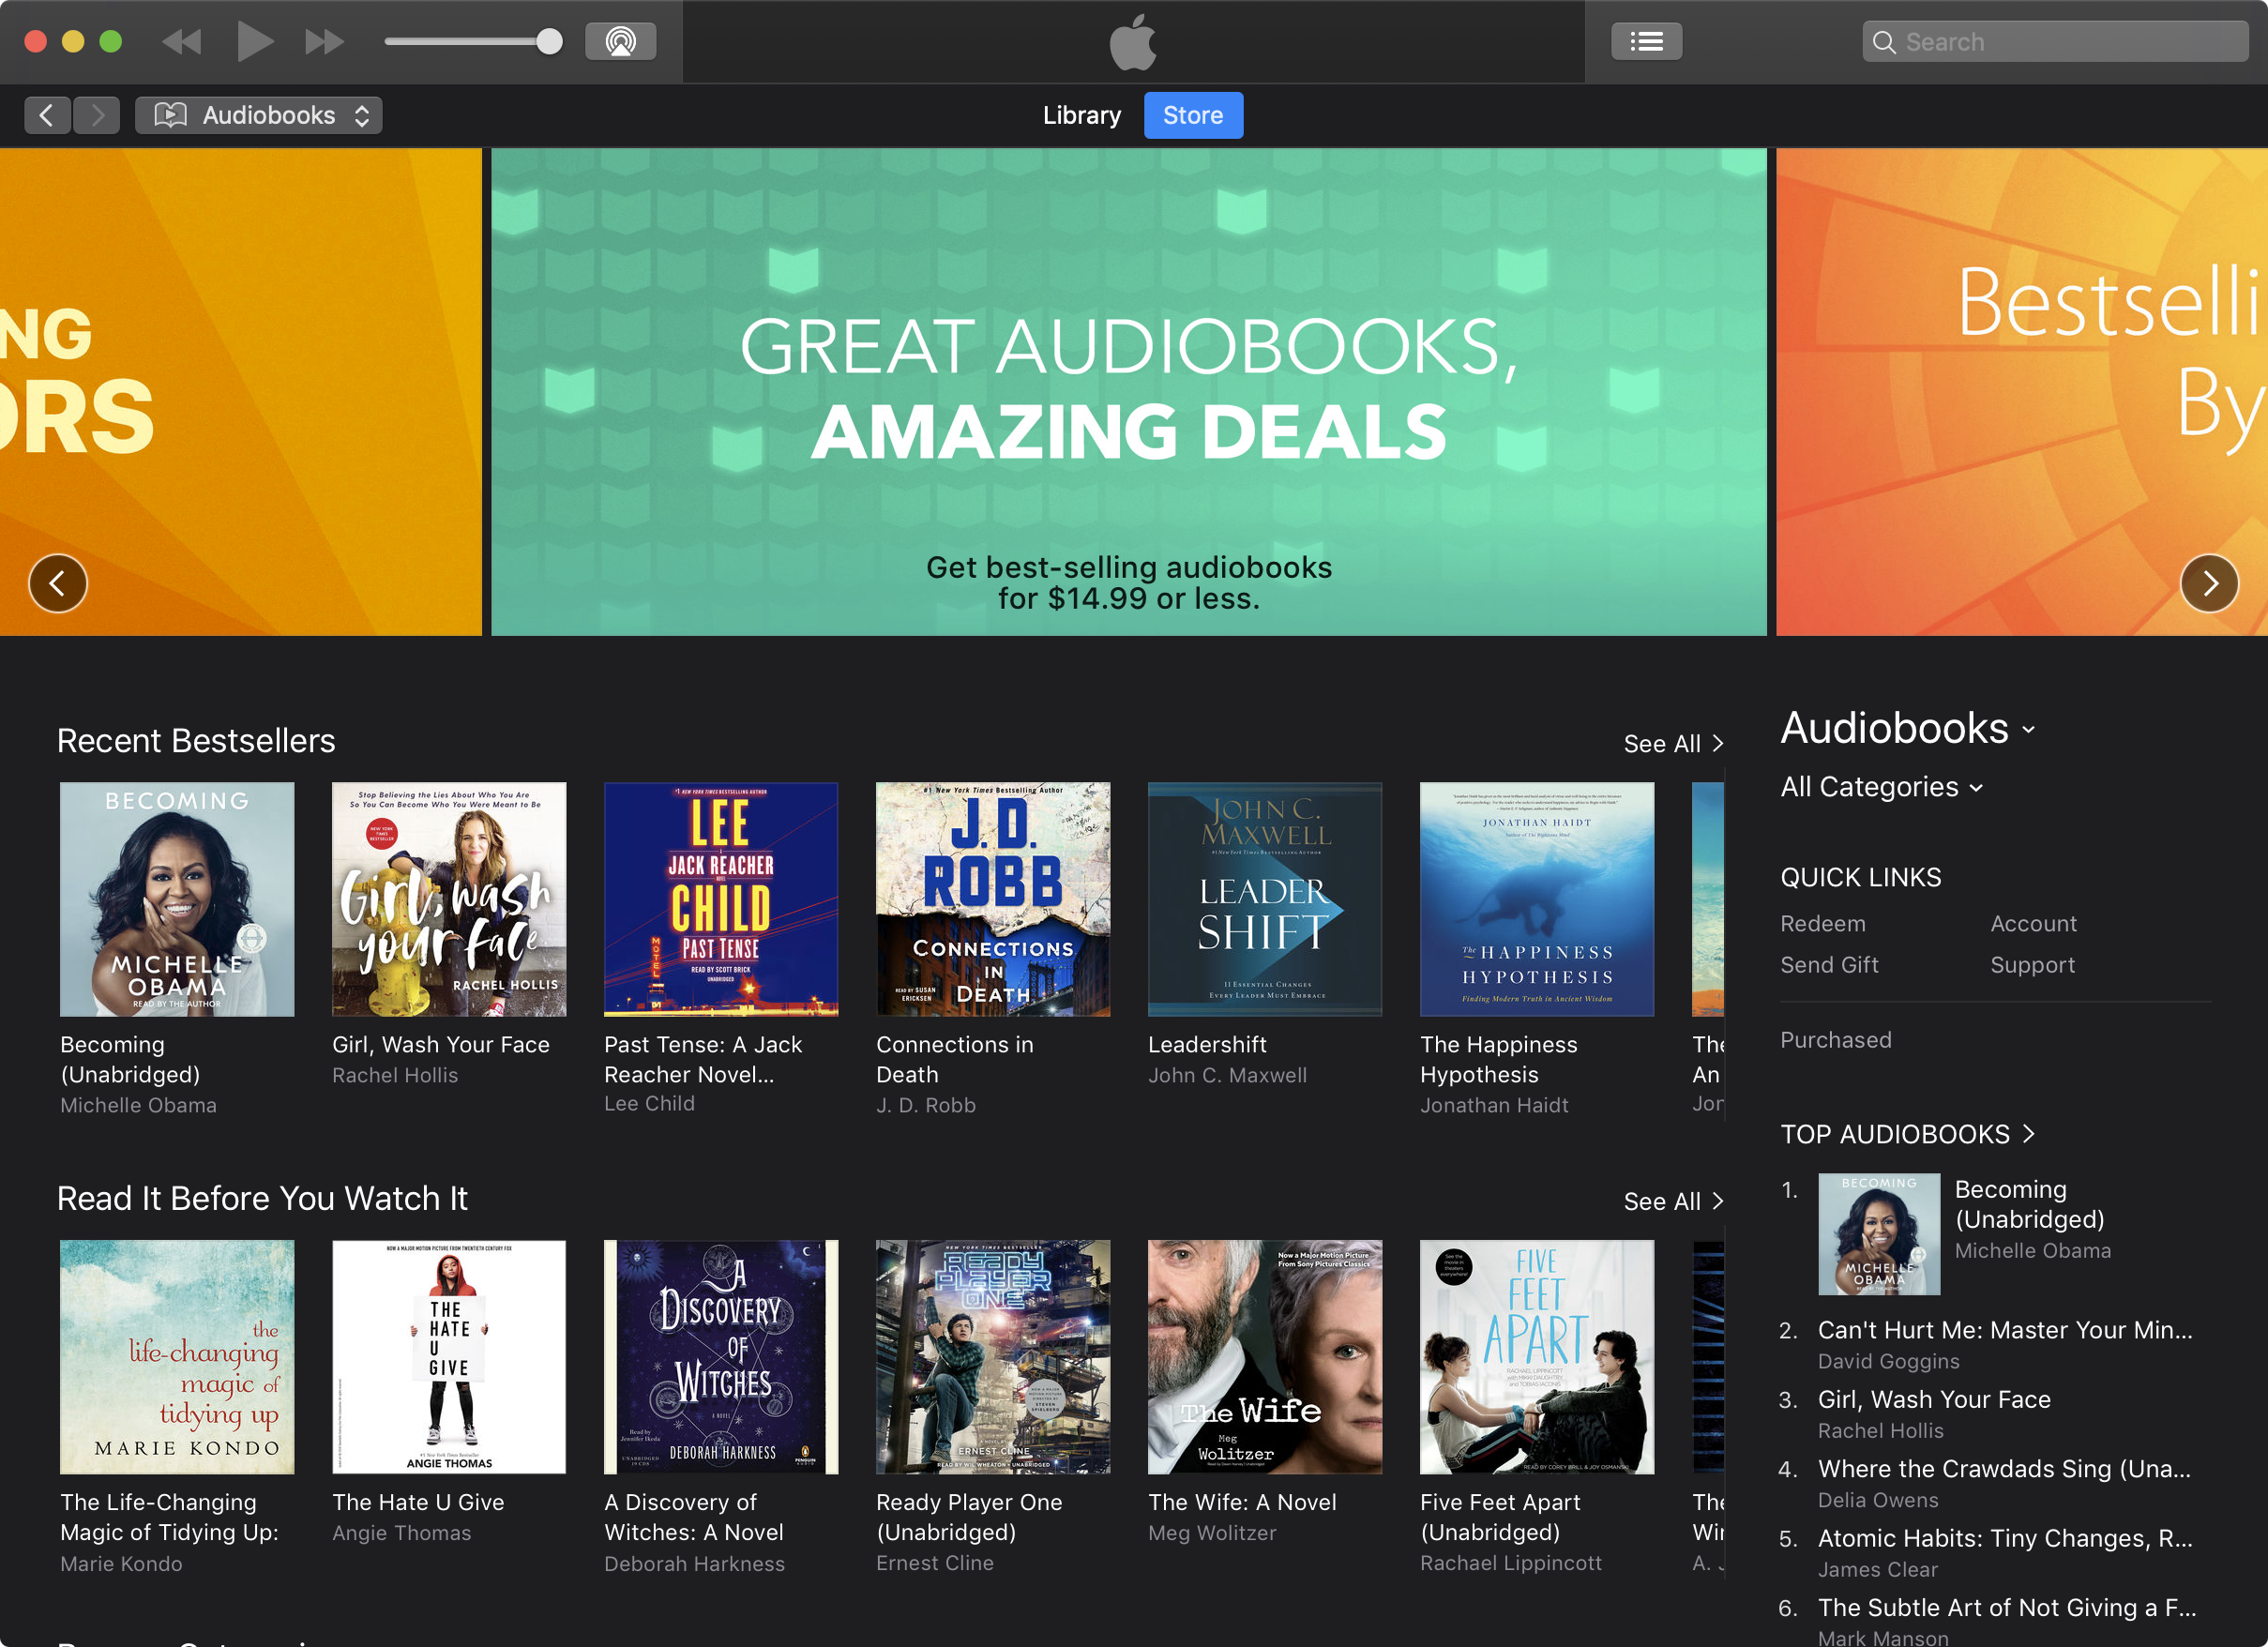 Opinion: Apple's audiobooks experience could benefit from a